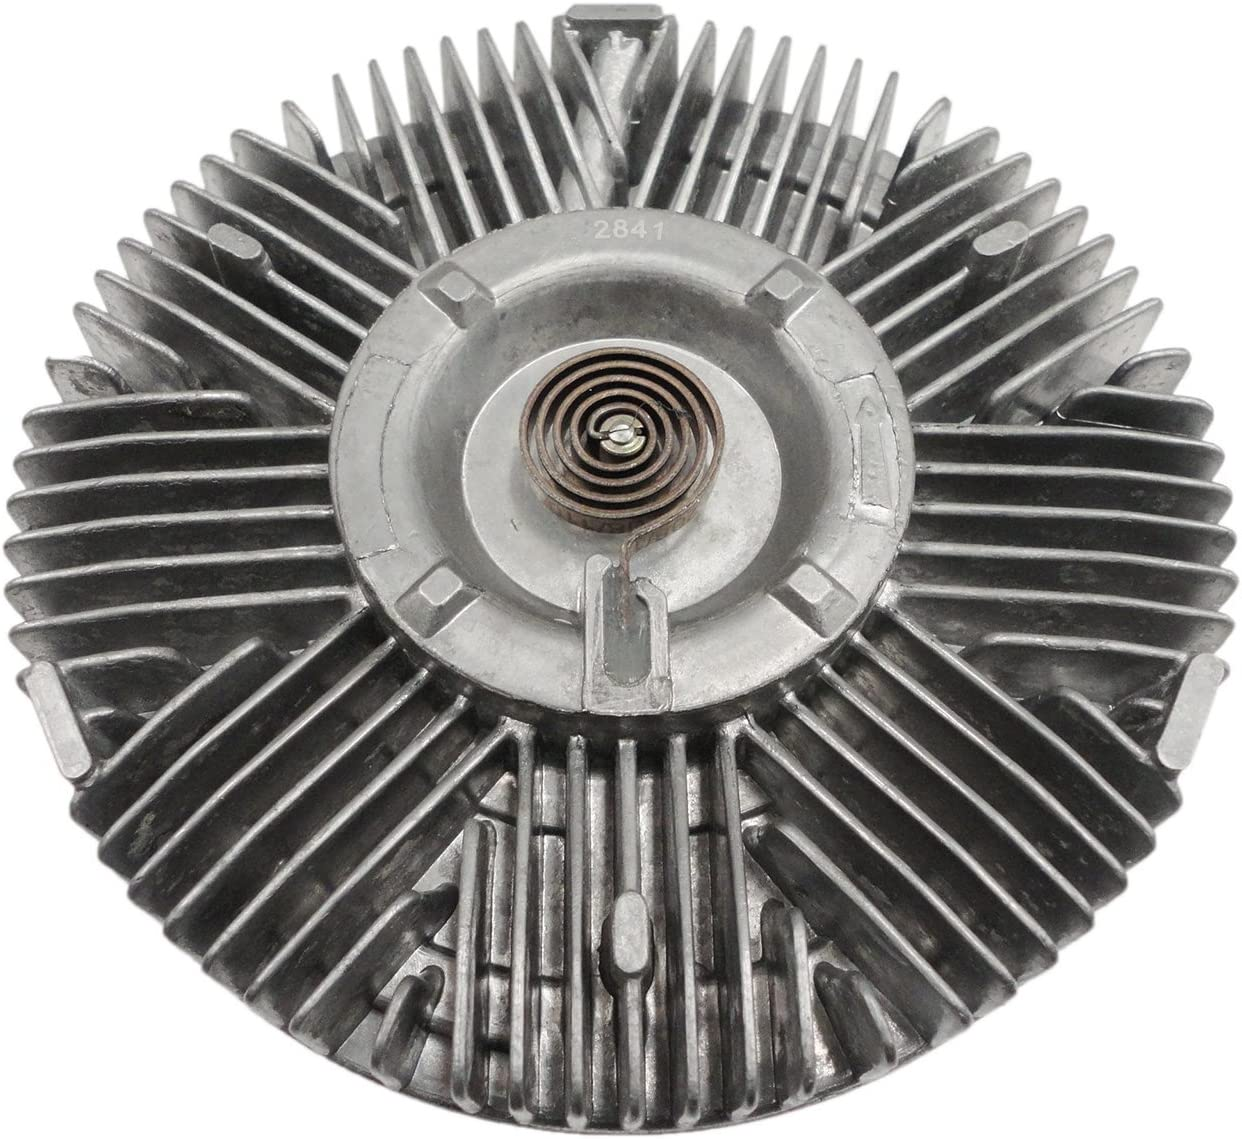 TOPAZ 2841 Engine Cooling Thermal Fan Clutch for Ford Explorer 96-01 Mercury Mountaineer 97-01 V8 5.0L